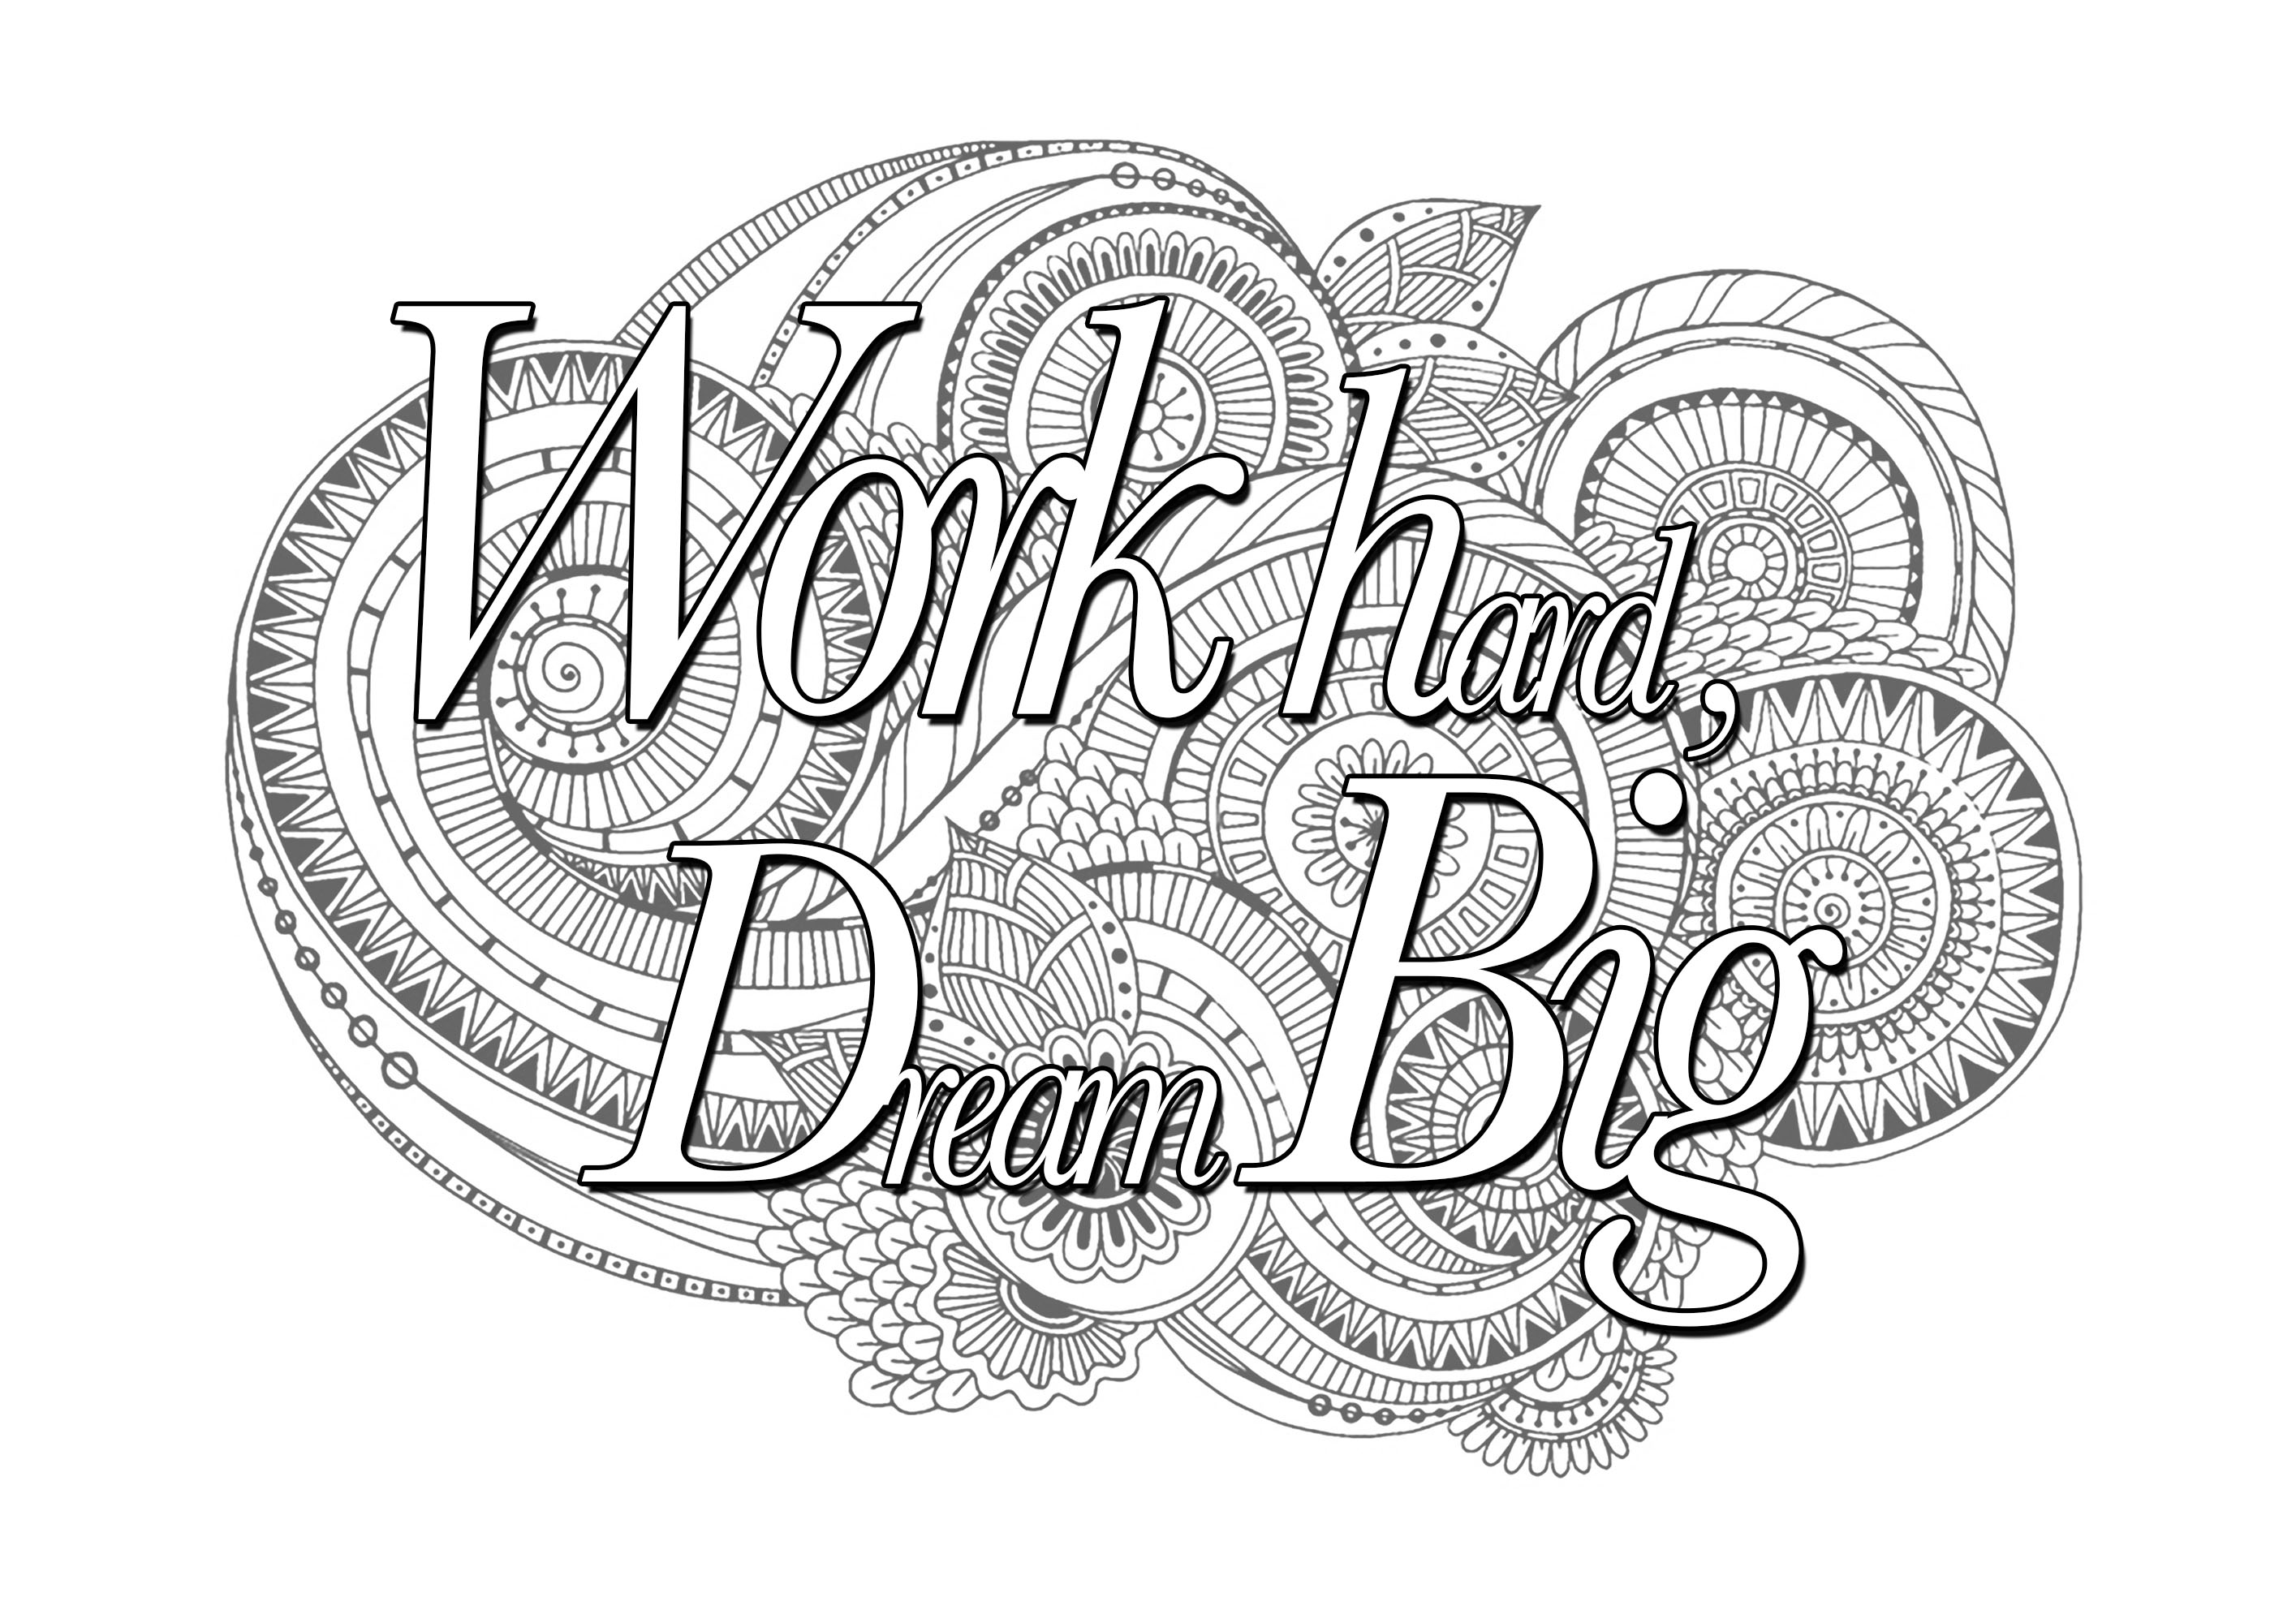 Quote work hard dream big | Quotes Coloring pages - Coloring pages ...